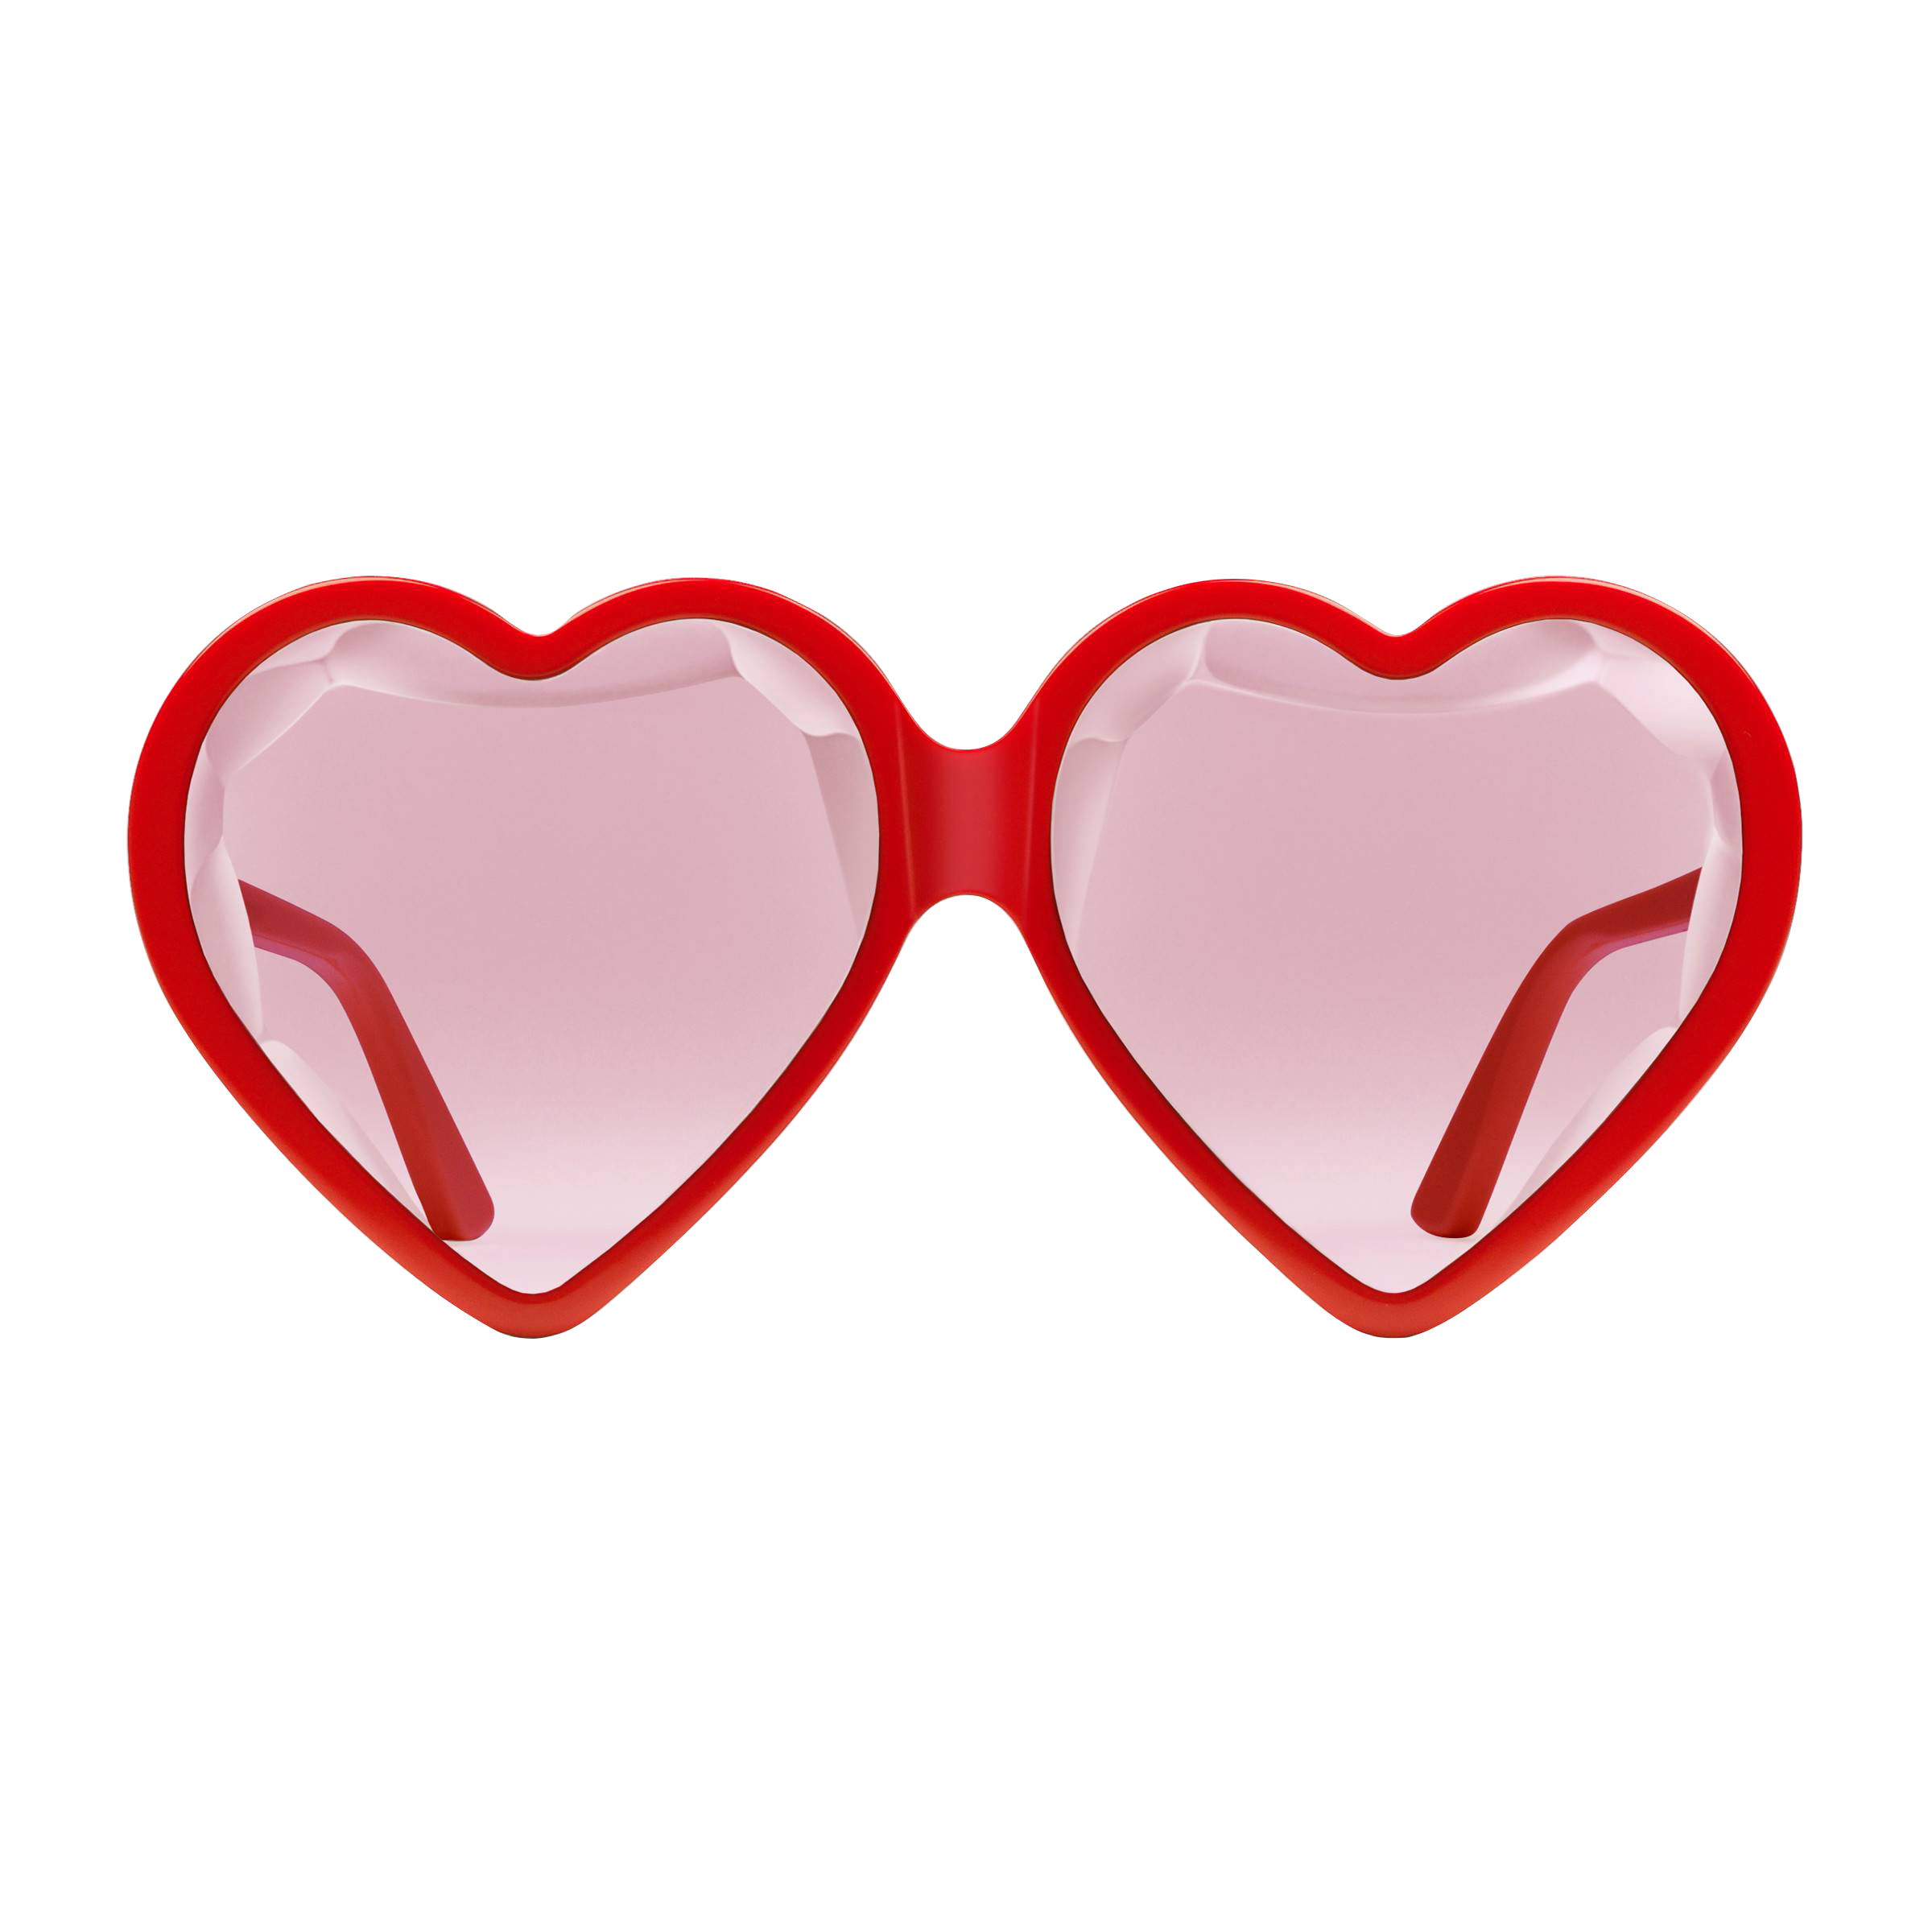 Heart glasses clipart image freeuse download If Sunglasses Had Superpowers, They'd Look Like This image freeuse download